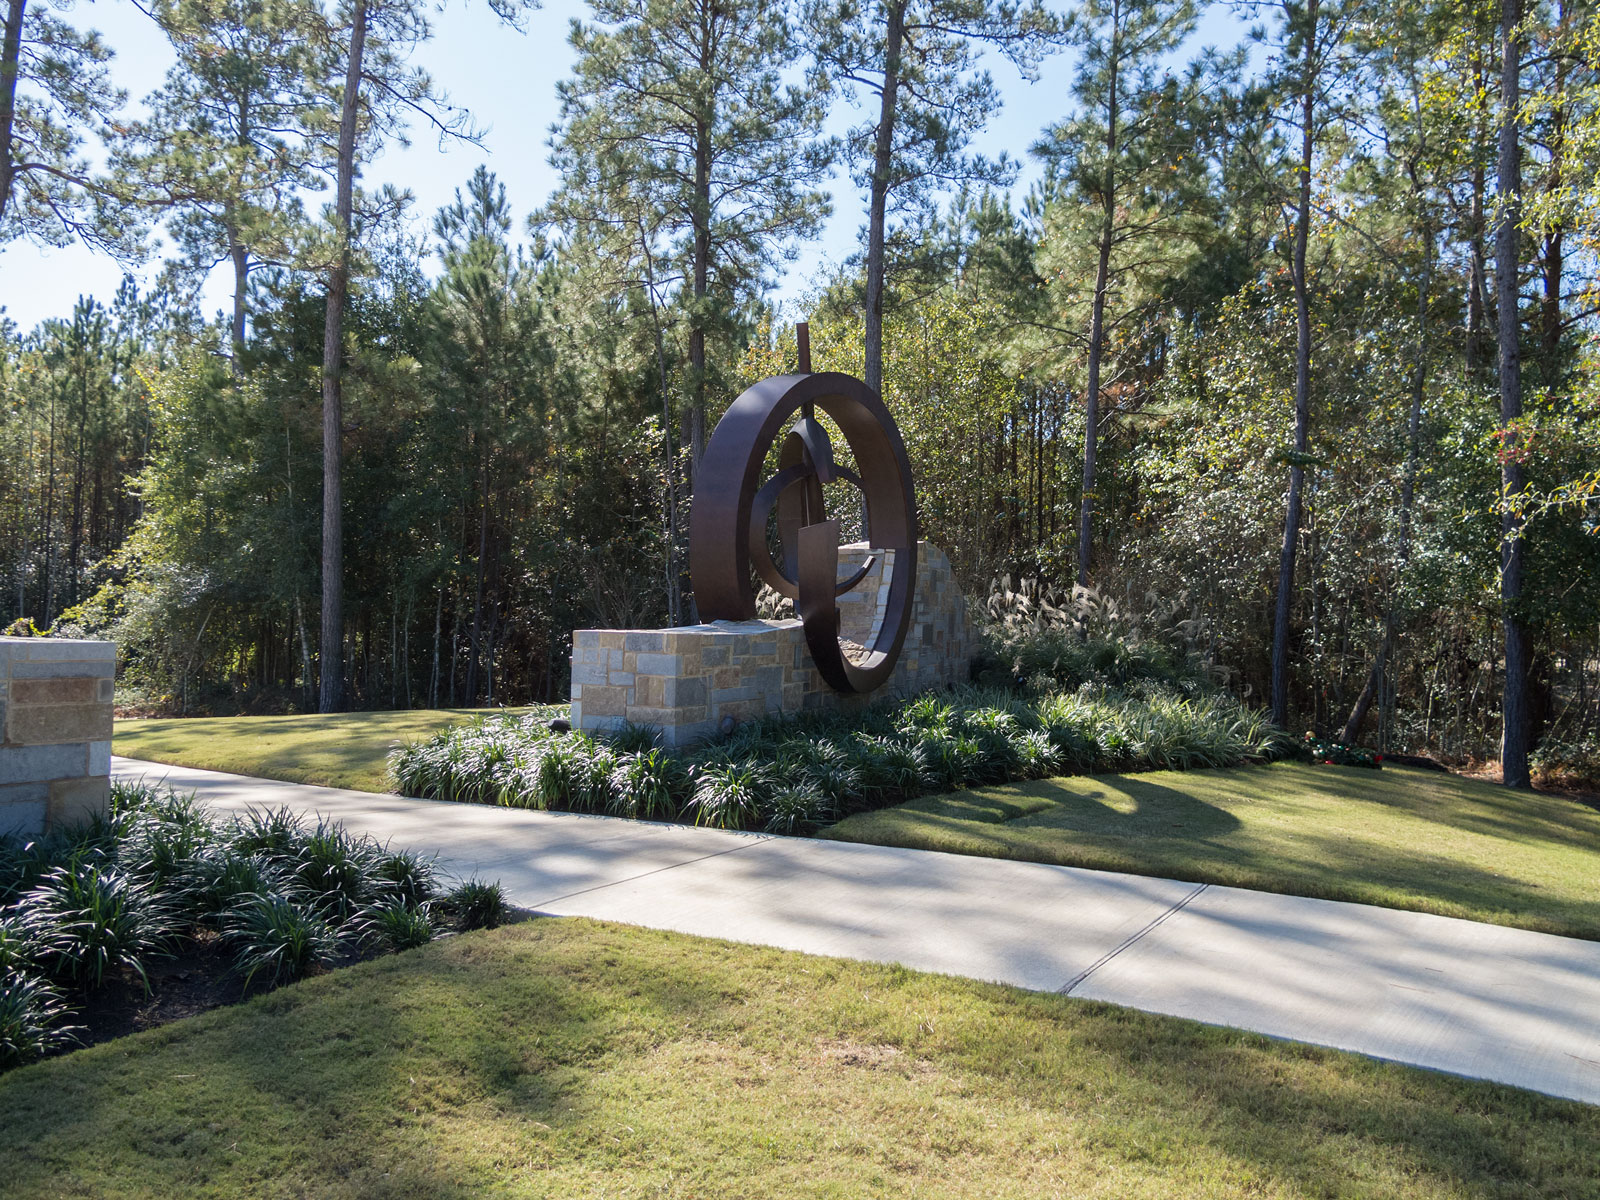 Back view of entry monument with internally illuminated, custom fabricated aluminum sculptural element and halo-lit channel letters.